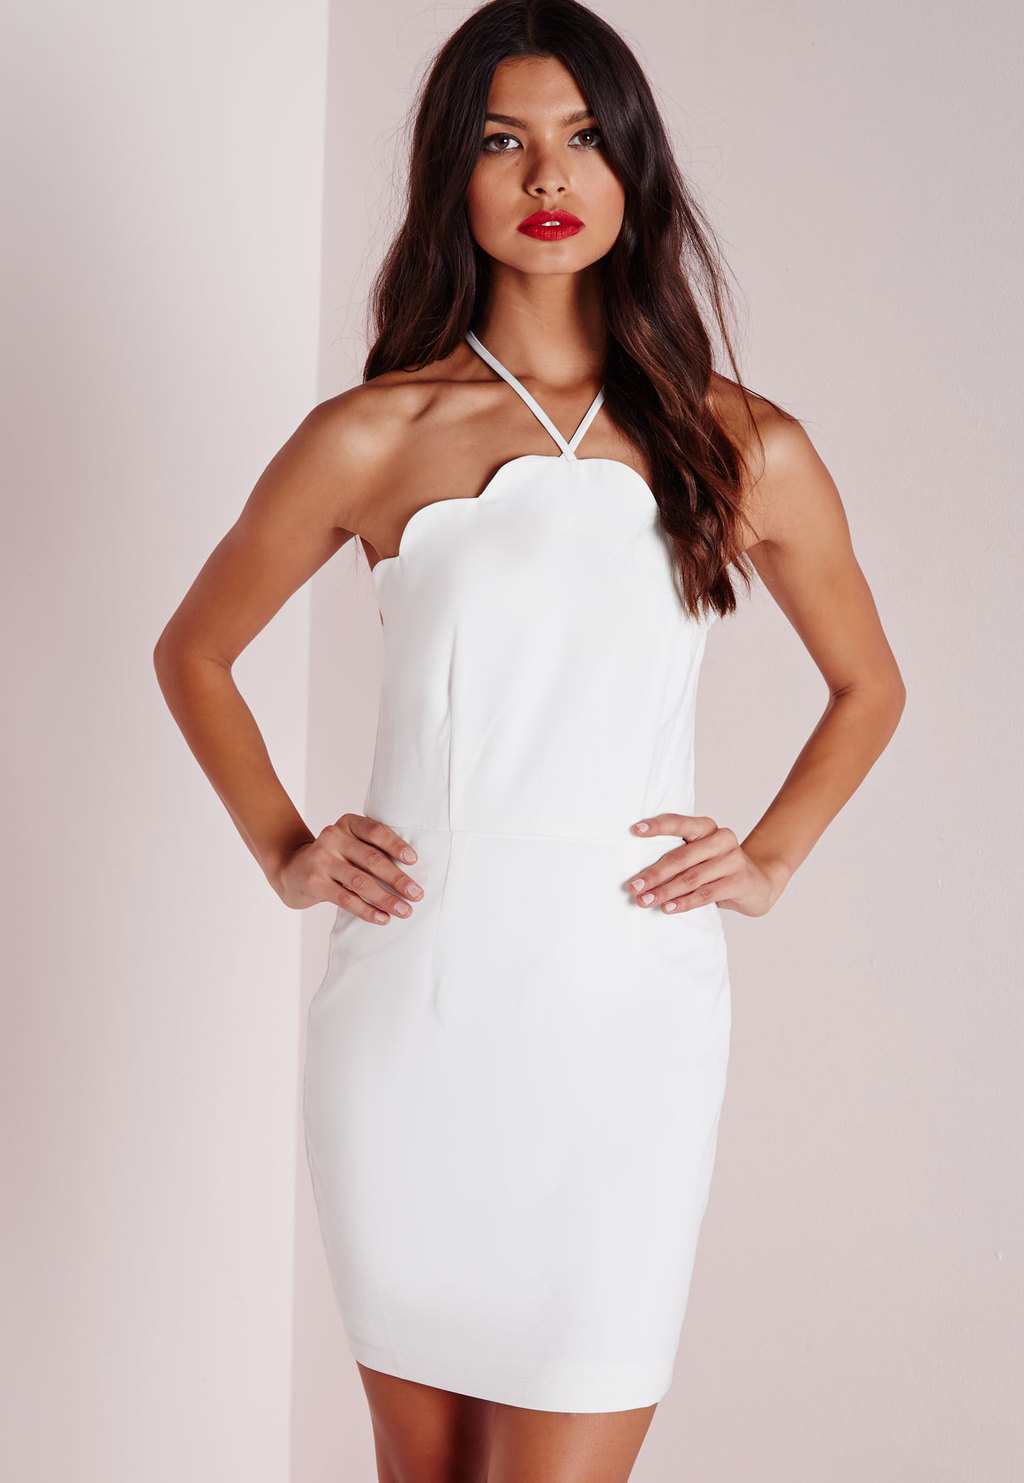 Scallop Bodycon Dress White, White - style: shift; length: mid thigh; fit: tight; pattern: plain; sleeve style: sleeveless; neckline: low halter neck; predominant colour: white; occasions: evening; fibres: polyester/polyamide - 100%; sleeve length: sleeveless; pattern type: fabric; texture group: other - light to midweight; season: a/w 2015; wardrobe: event